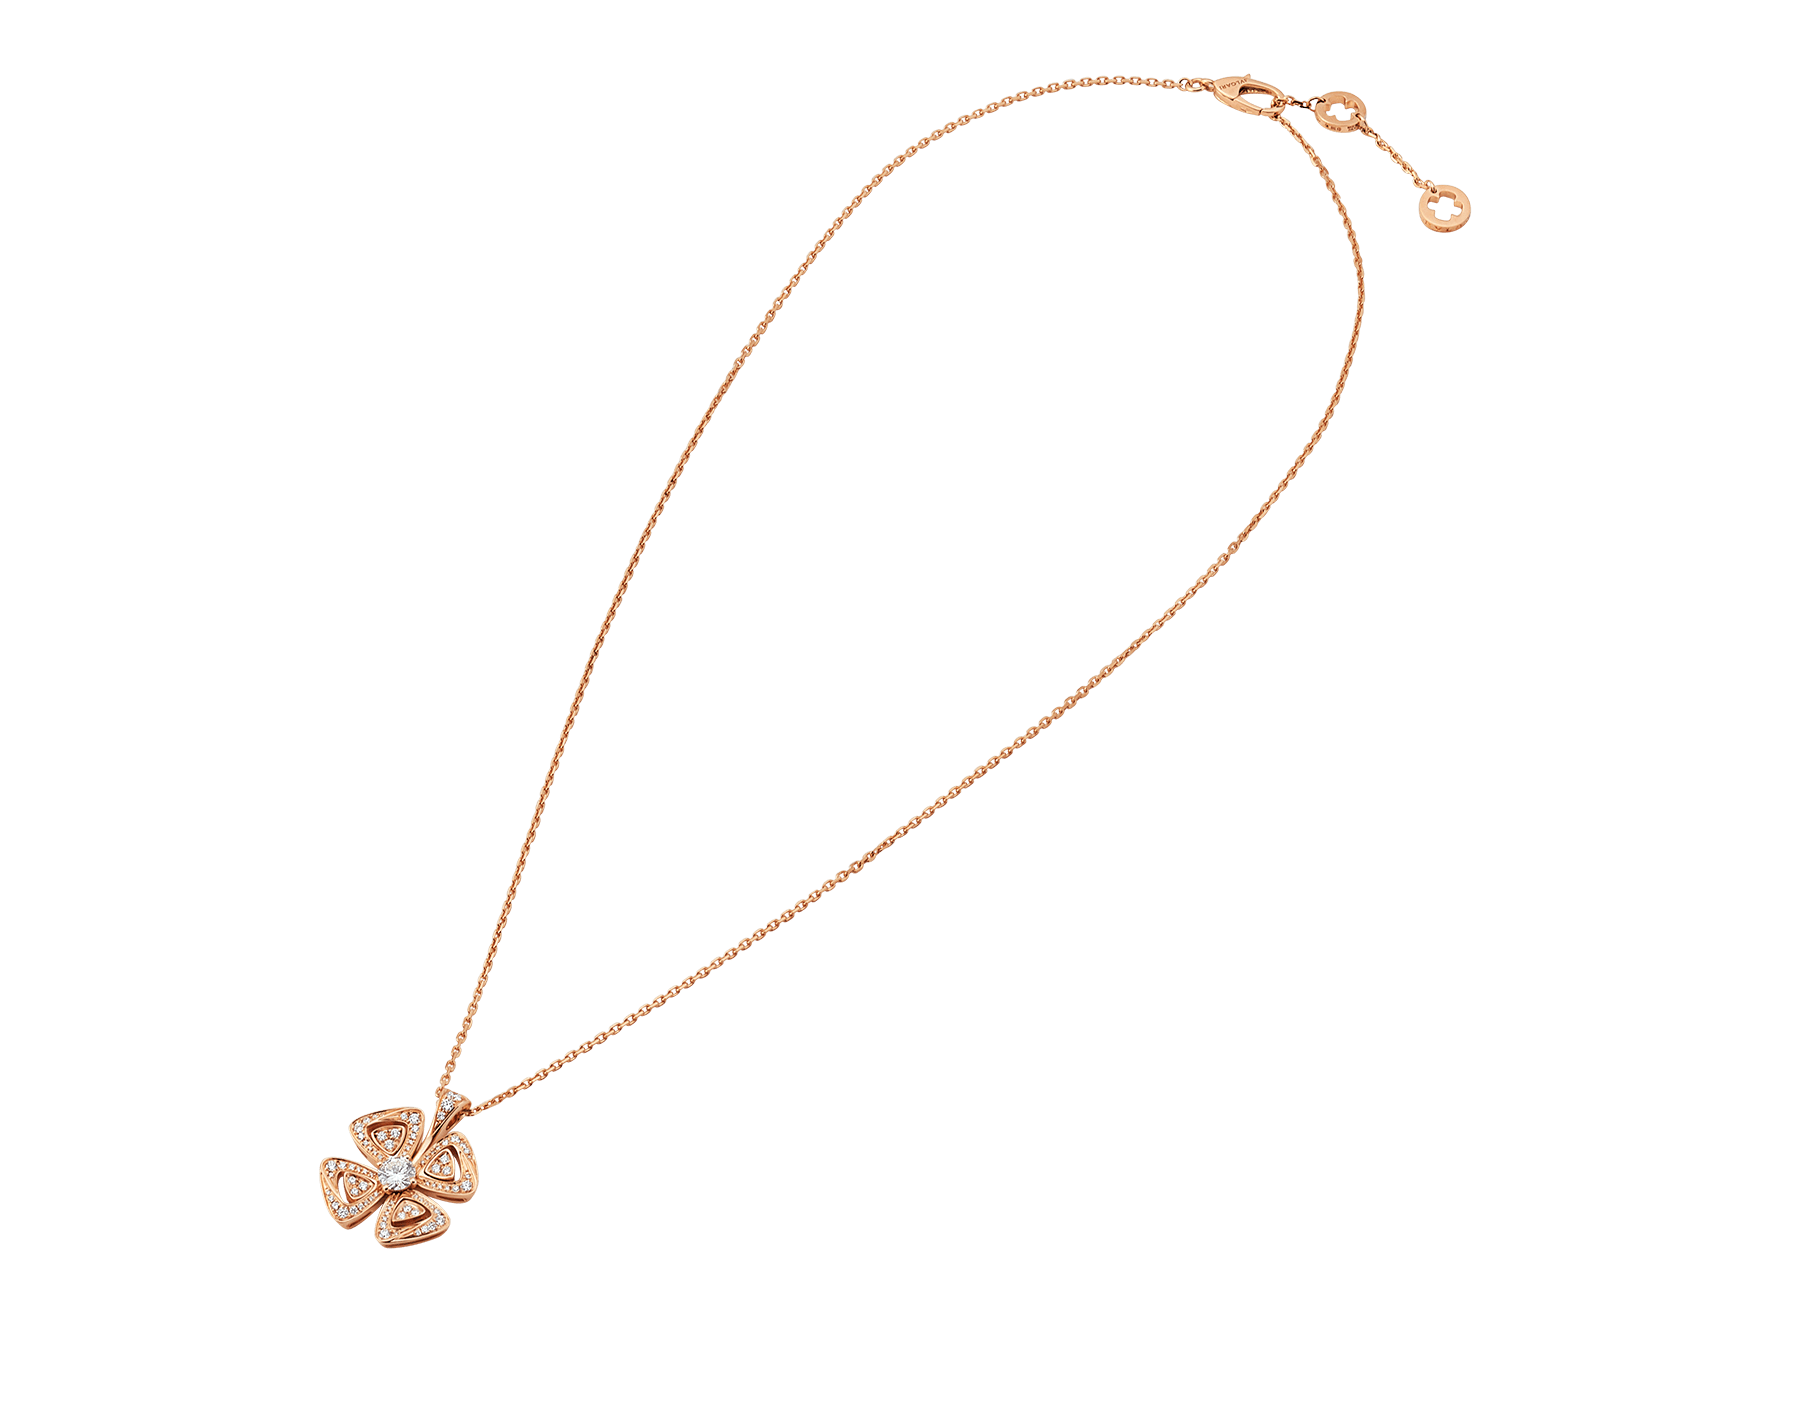 Fiorever 18 kt rose gold necklace set with a central diamond and pavé diamonds. 355885 image 2